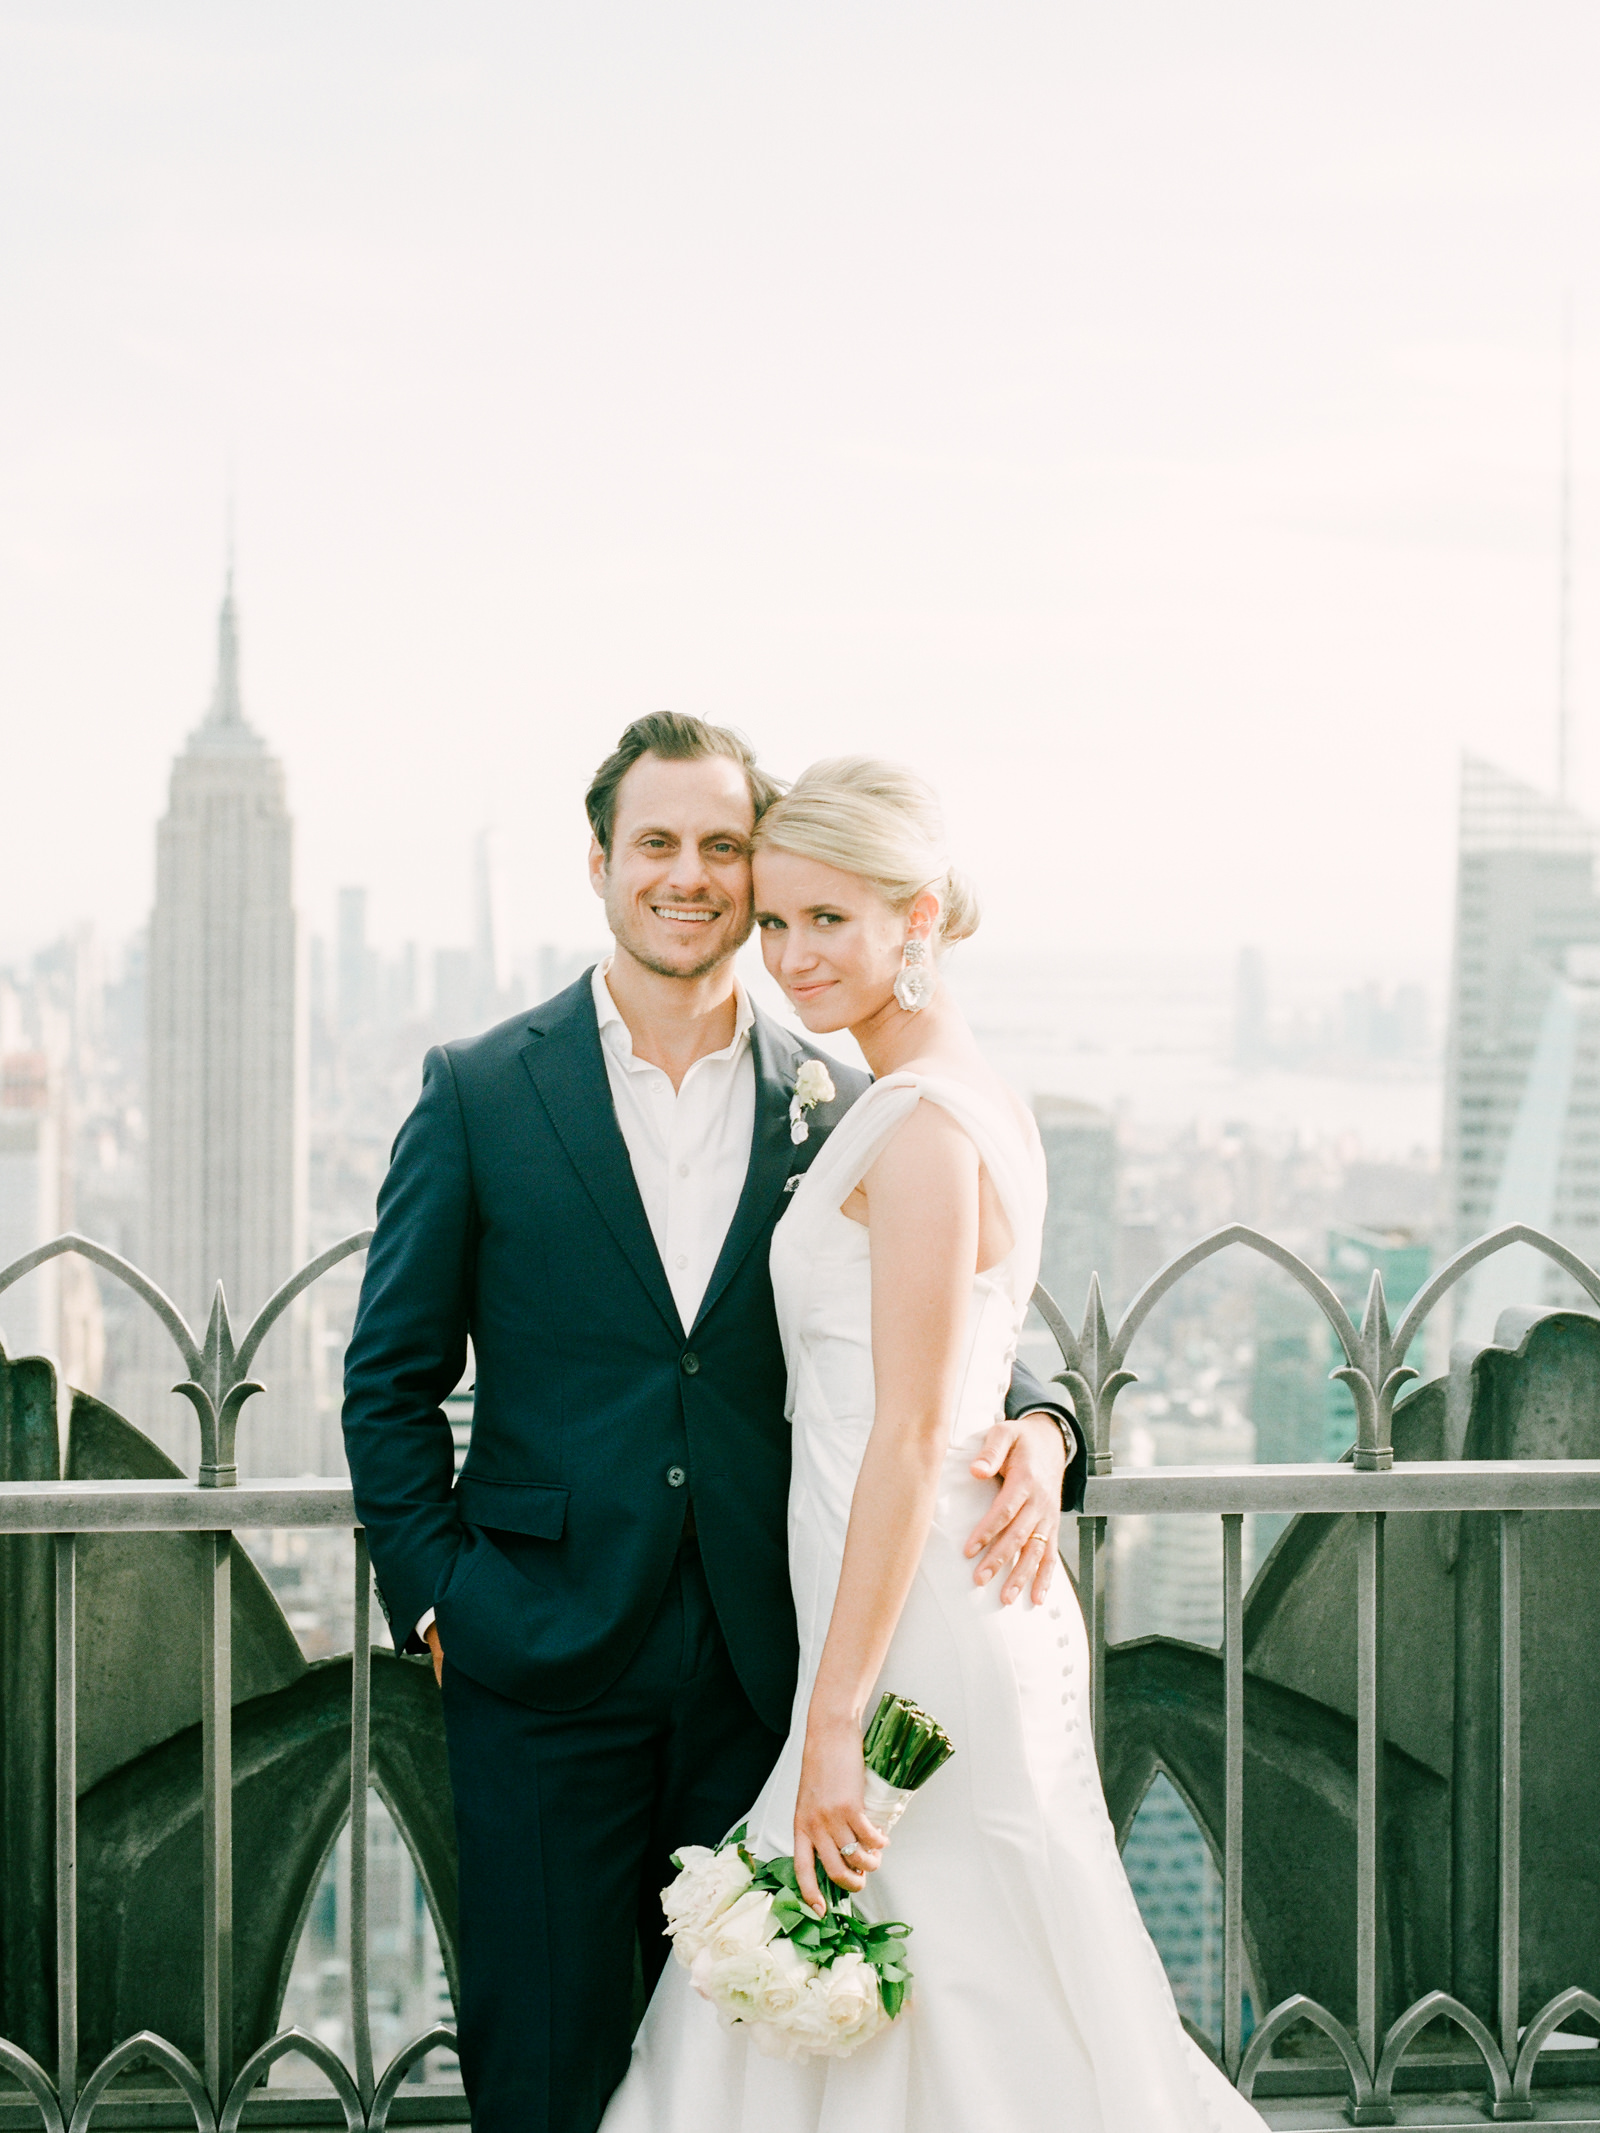 Intimate-NYC_wedding_ by Tanya Isaeva-160.jpg